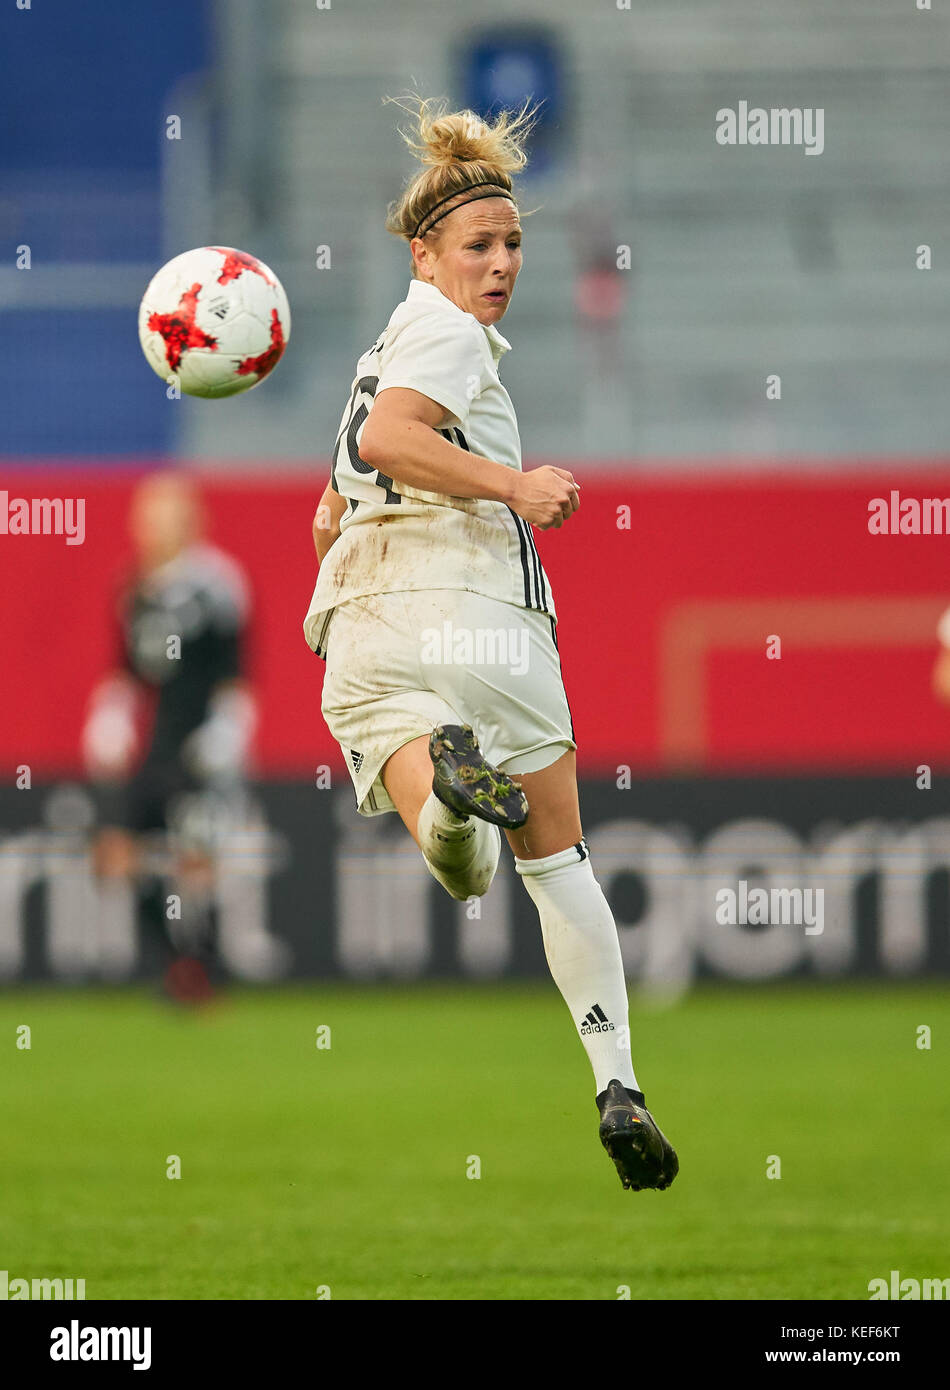 Wiesbaden, Germany. 20th Oct, 2017. Women World Cup 2019 Qualification, Wiesbaden, October 20, 2017 Svenja HUTH, - Stock Image